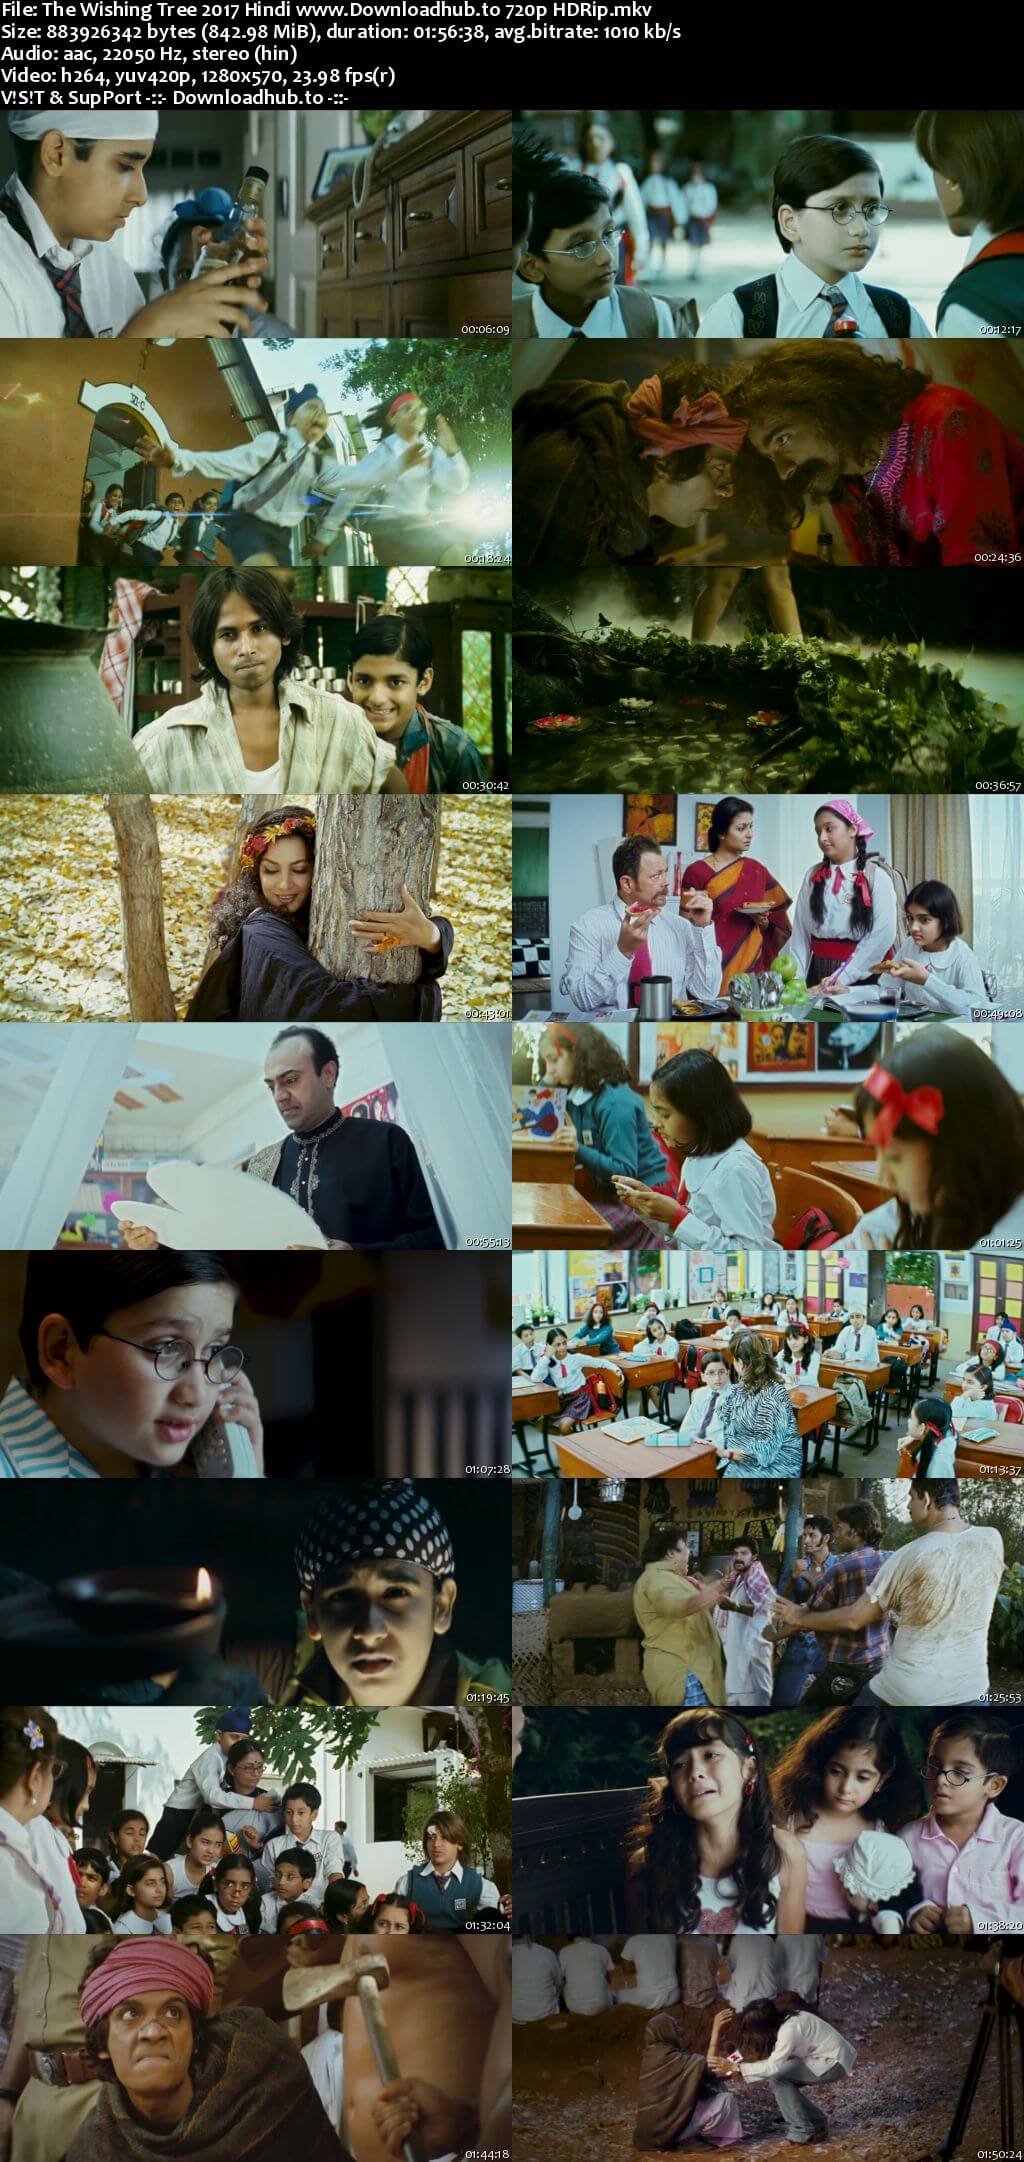 The Wishing Tree 2017 Hindi 720p HDRip